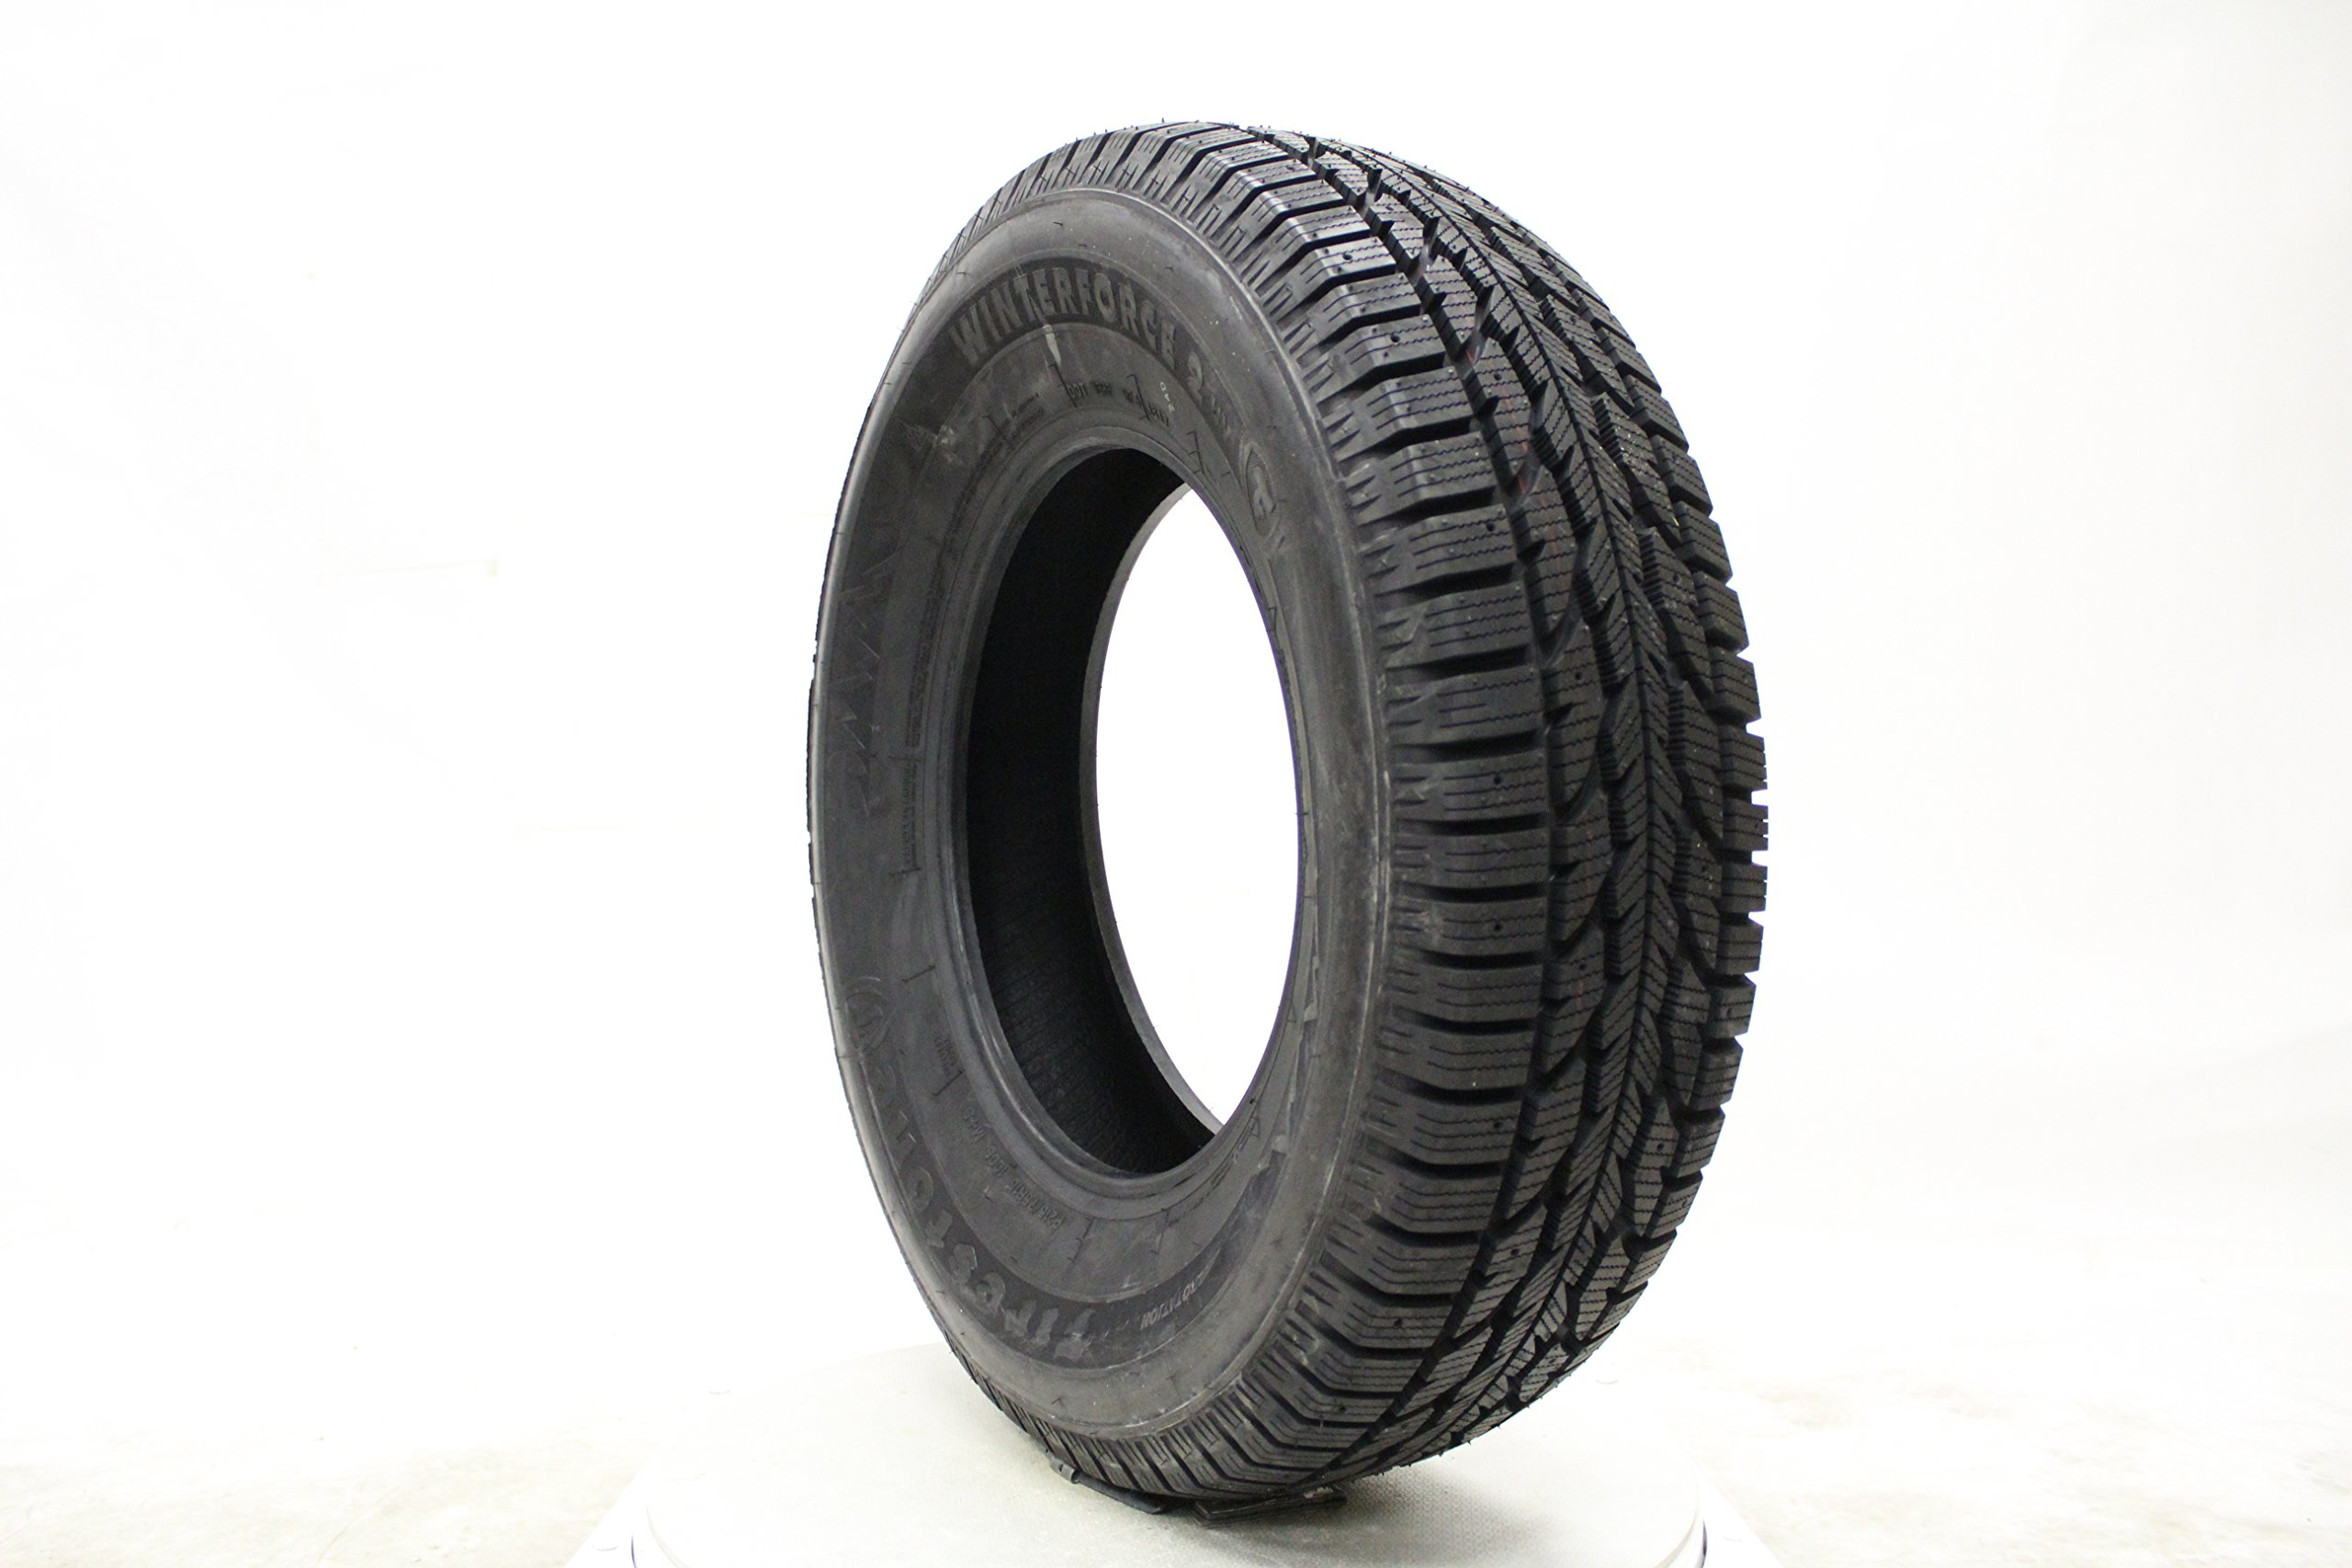 Firestone Winterforce 2 UV Studable-Winter Radial Tire - 225/65R17 102S by Firestone